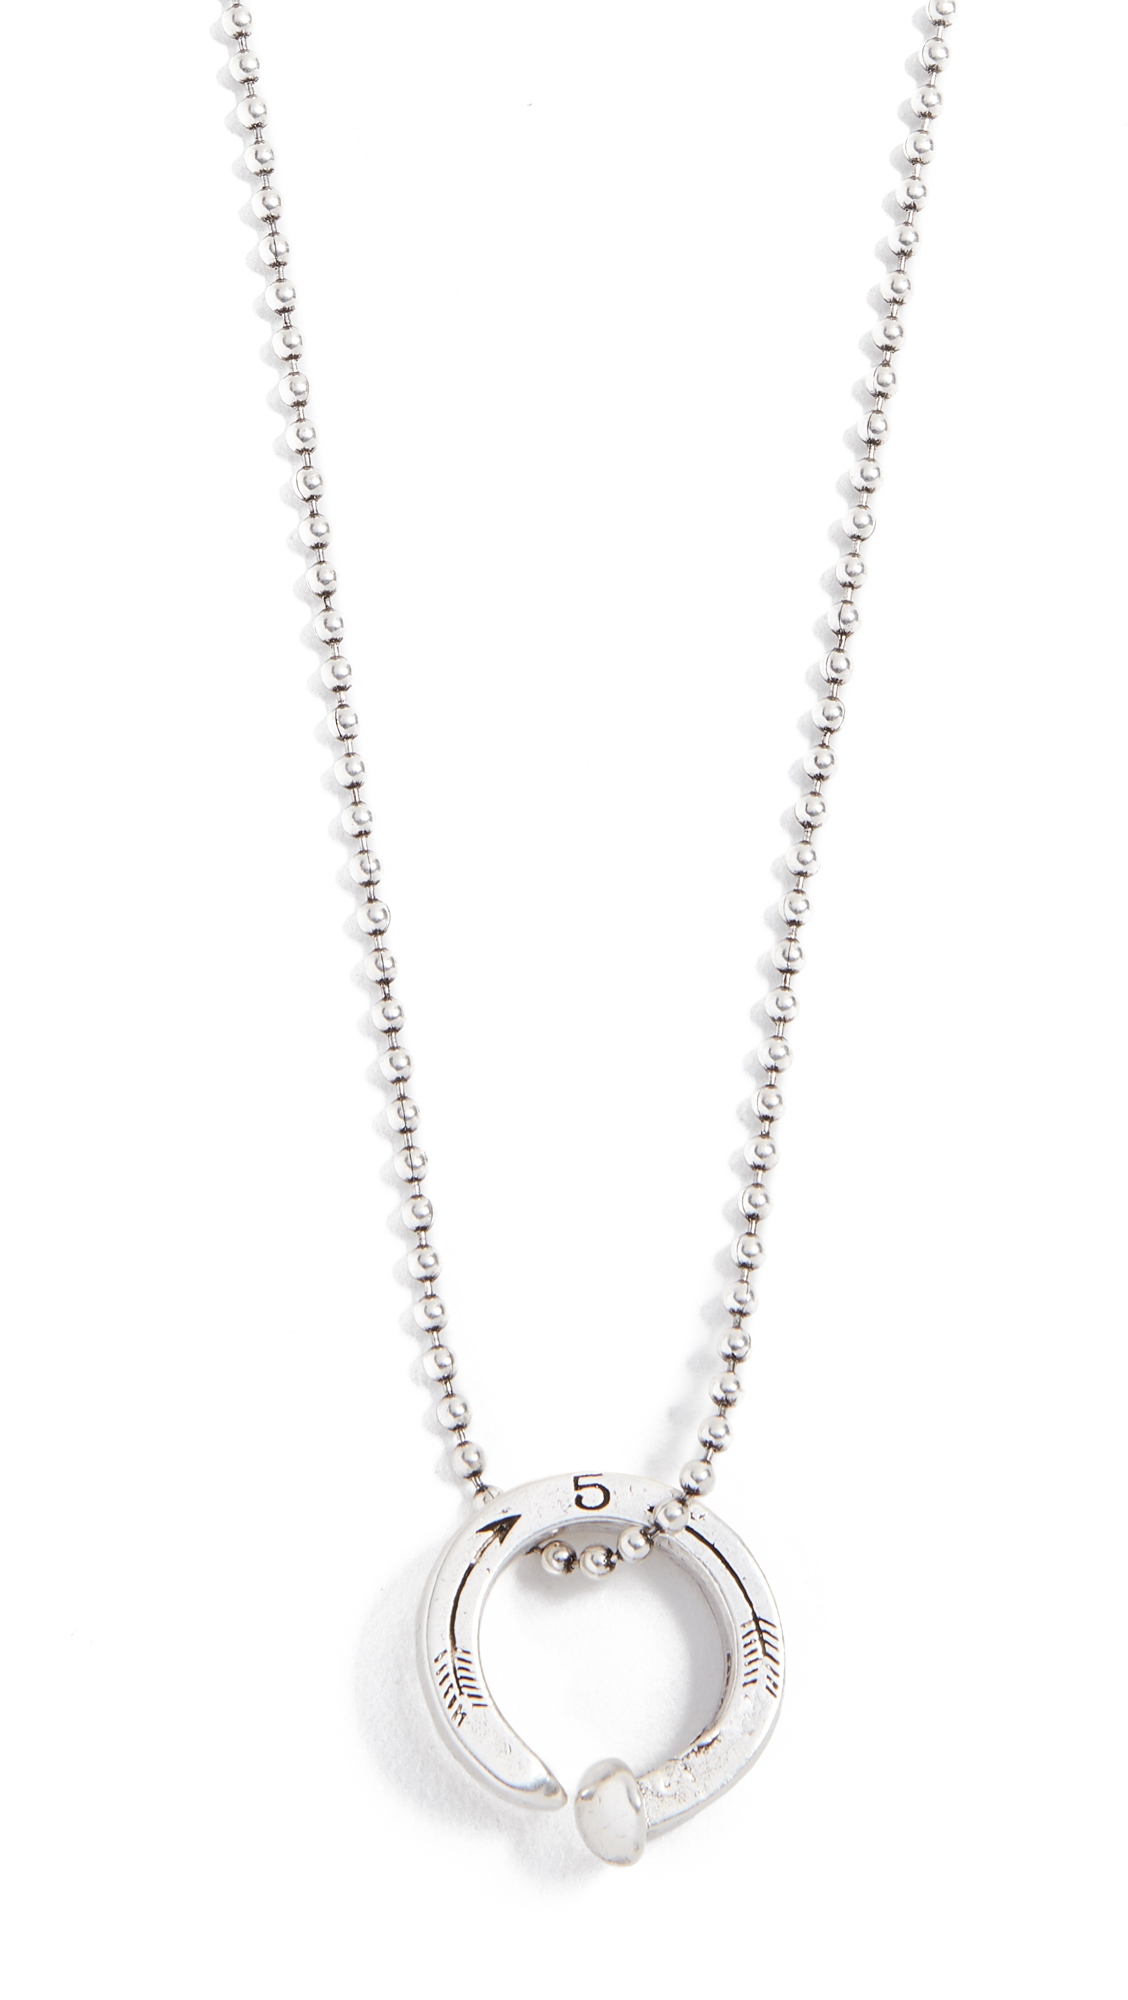 GILES & BROTHER Railroad Spike Ring Ball Chain Necklace in Silver Oxide